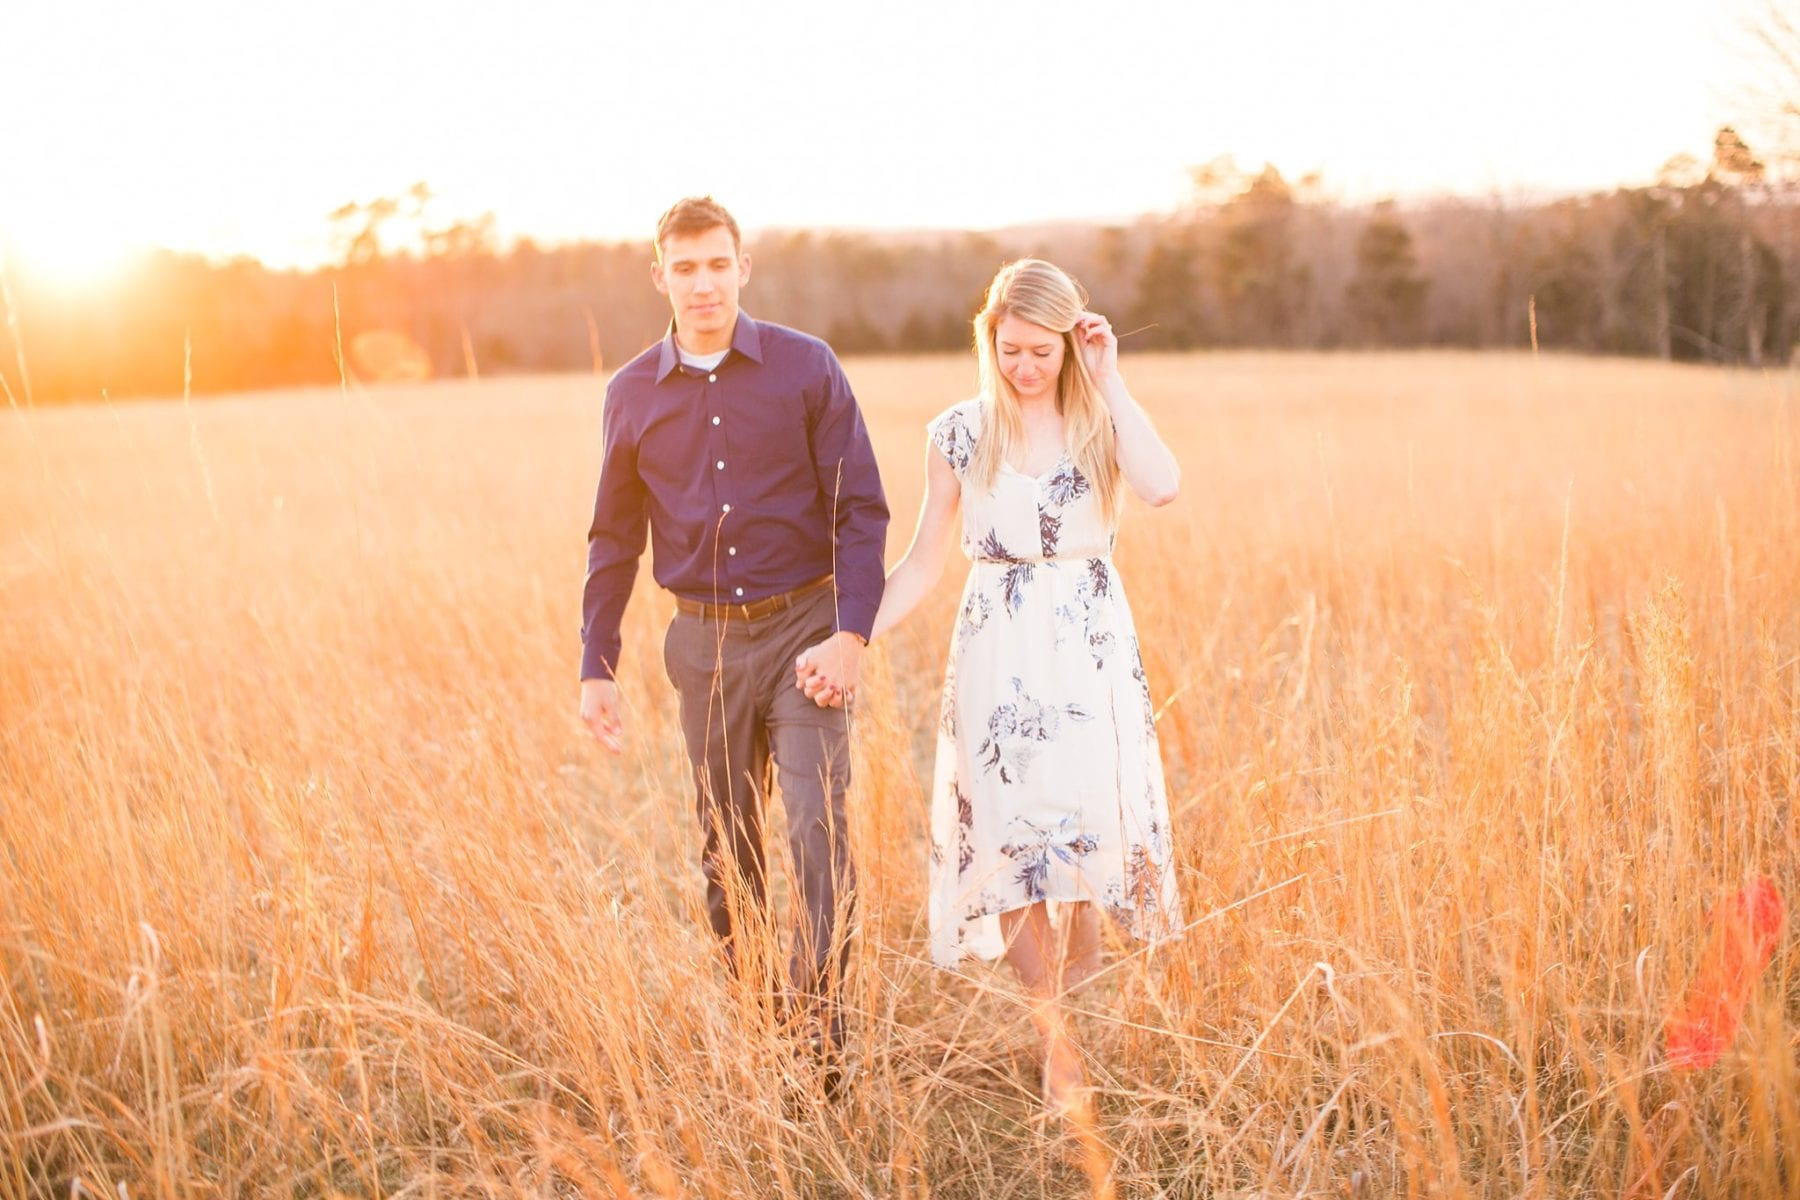 Manassas Battlefield Engagement Session Virginia Wedding Photographer Danielle & Charlie Megan Kelsey Photography-6214.jpg